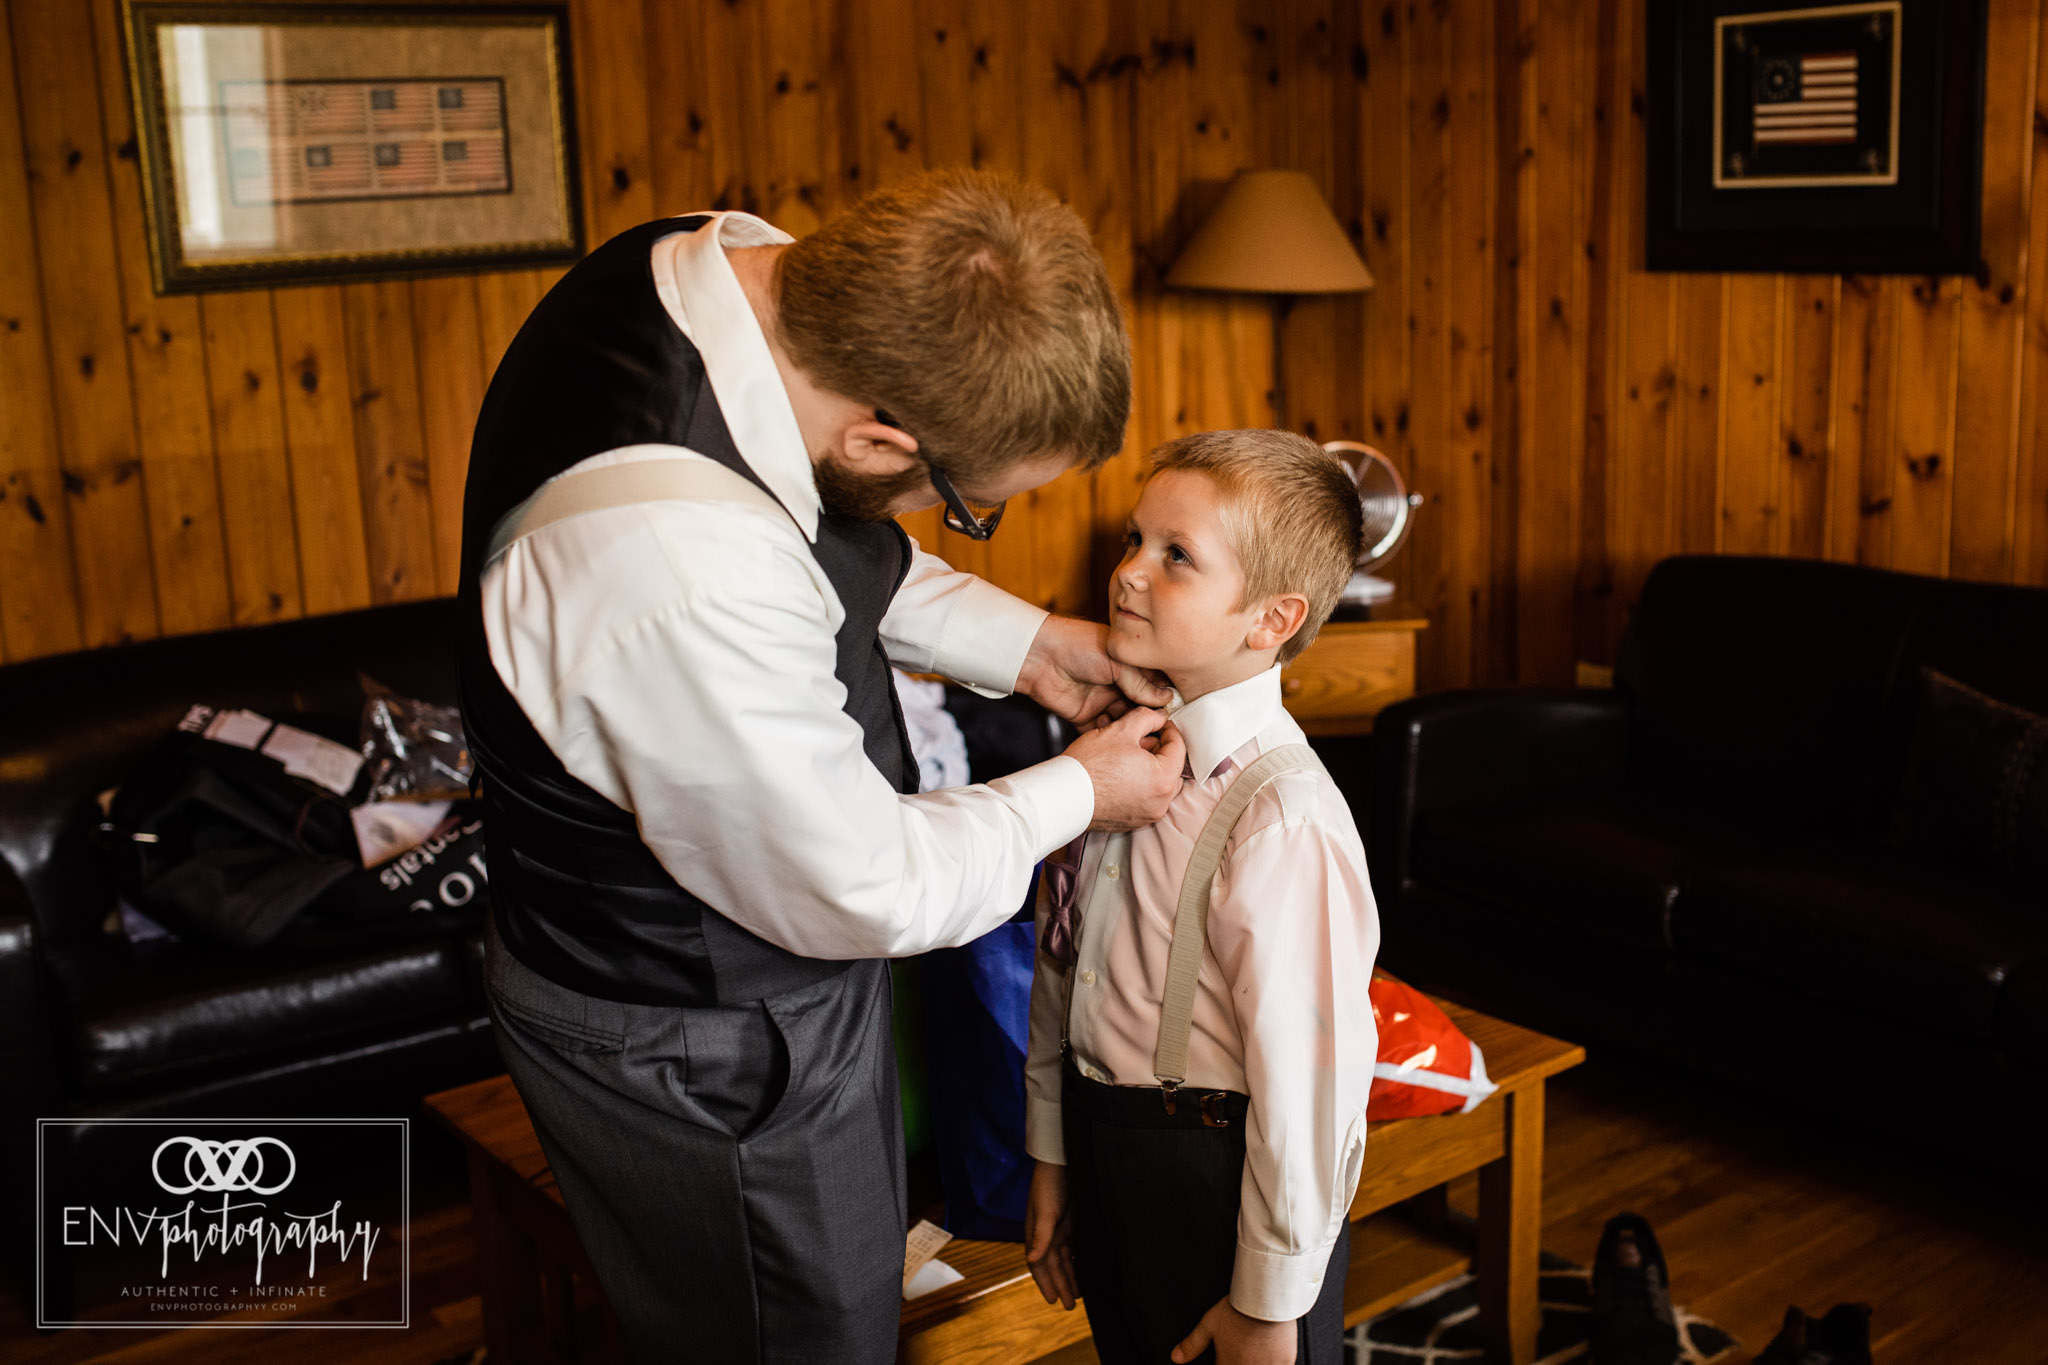 mount vernon columbus ohio irongate equestrian center wedding photographer (10).jpg